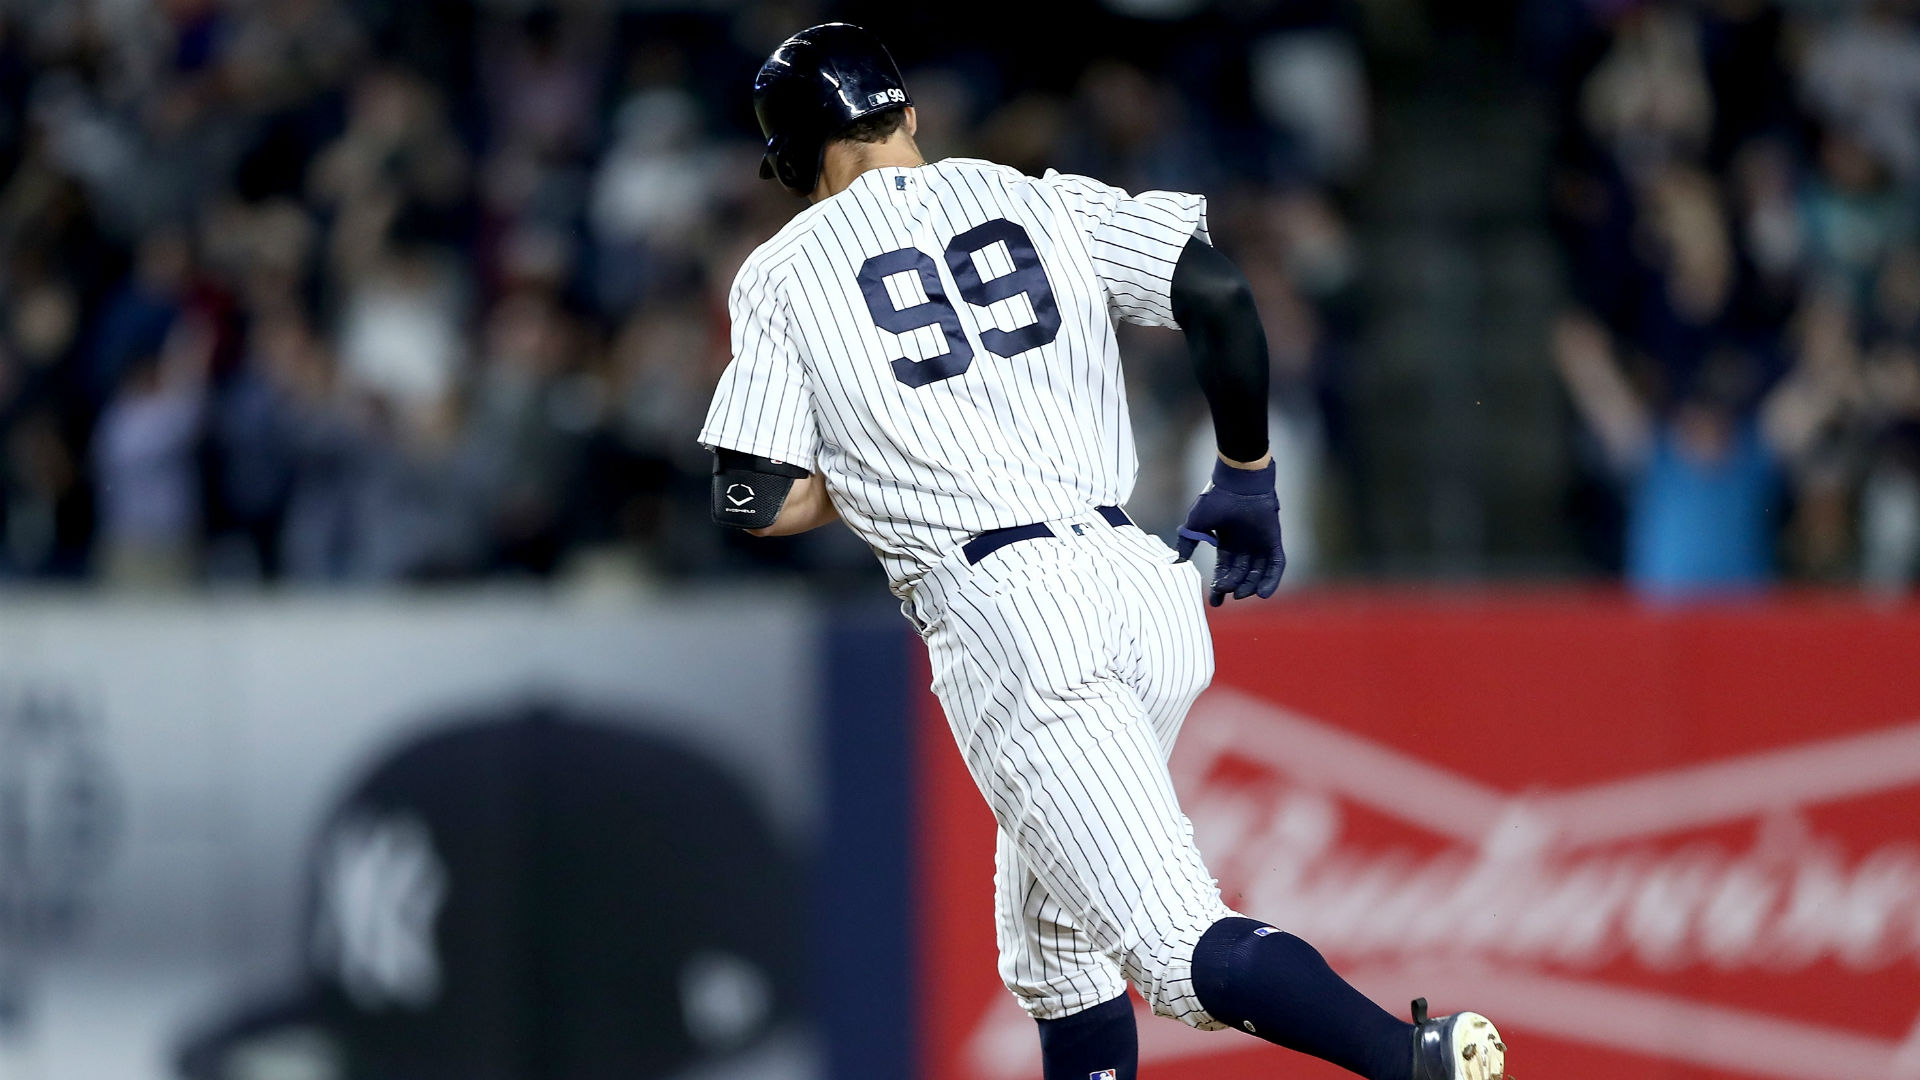 d8d9aa07717 Yankees rookie Aaron Judge s hot start leads to spike in jersey sales